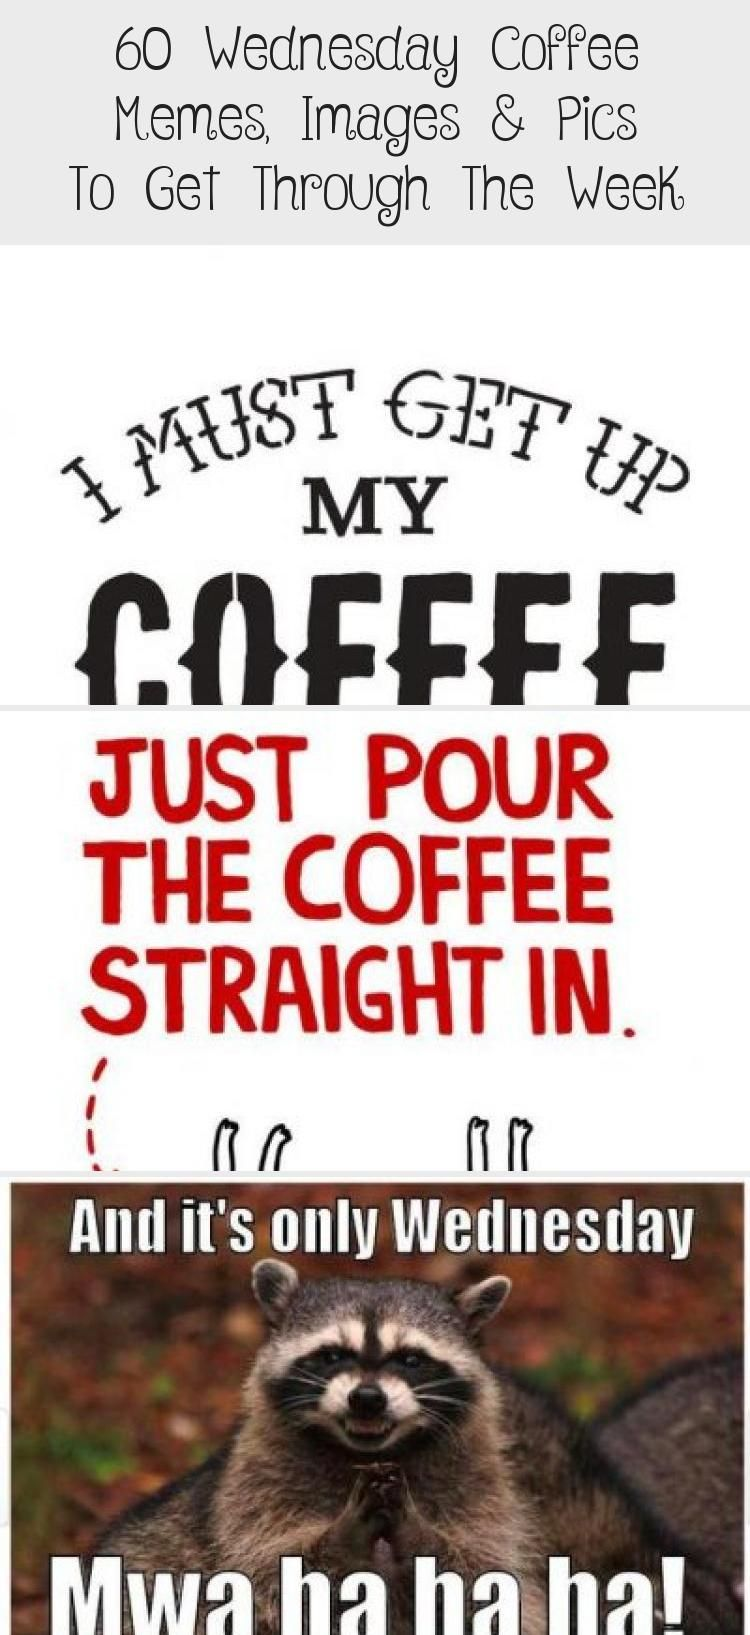 Wednesday Coffee Meme : wednesday, coffee, Wednesday, Coffee, Memes,, Images, Through, Coffee,, Humor,